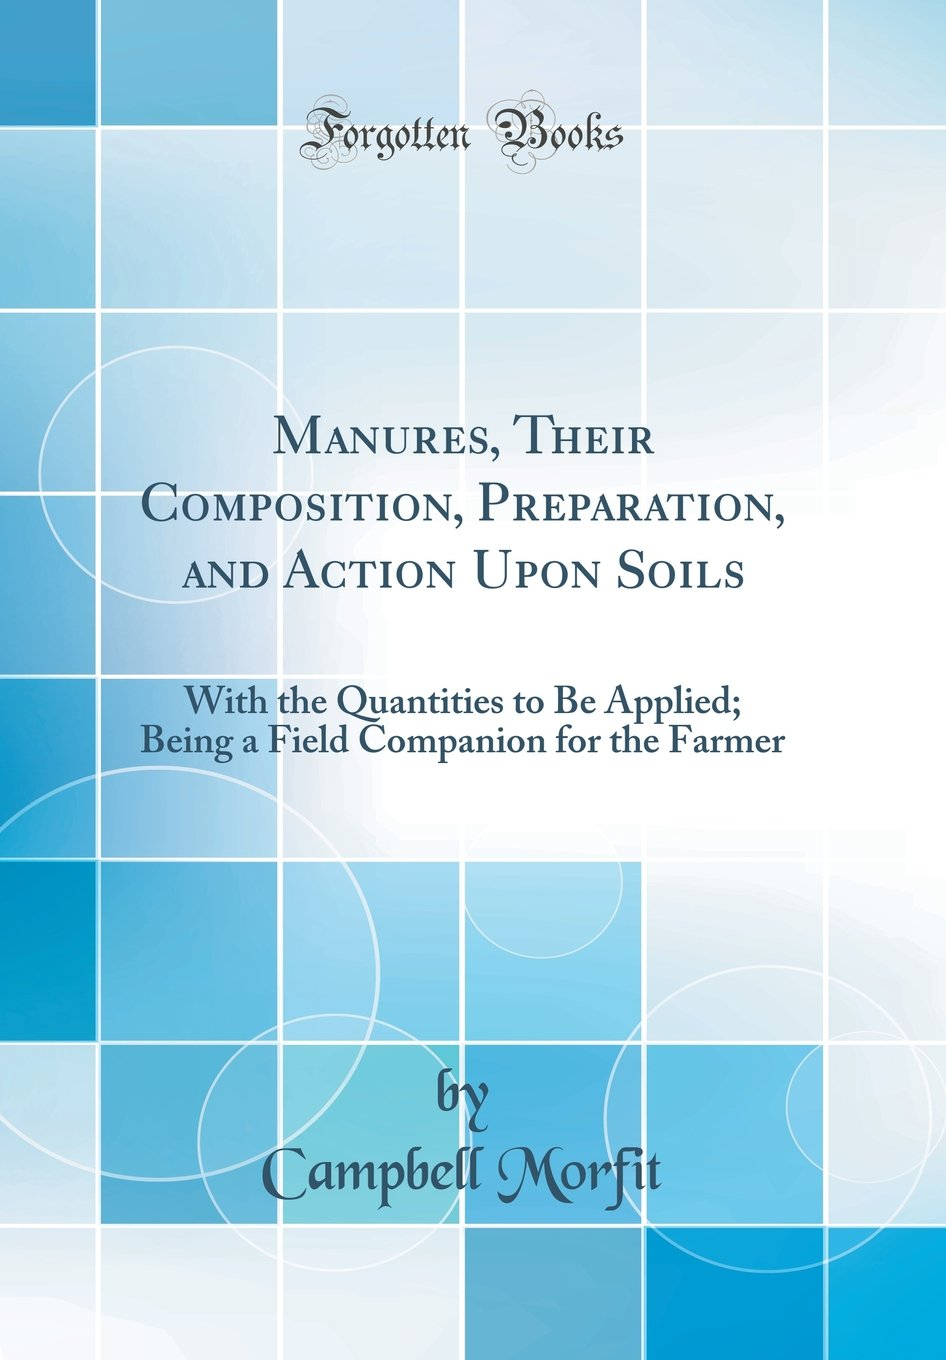 Download Manures, Their Composition, Preparation, and Action Upon Soils: With the Quantities to Be Applied; Being a Field Companion for the Farmer (Classic Reprint) ebook